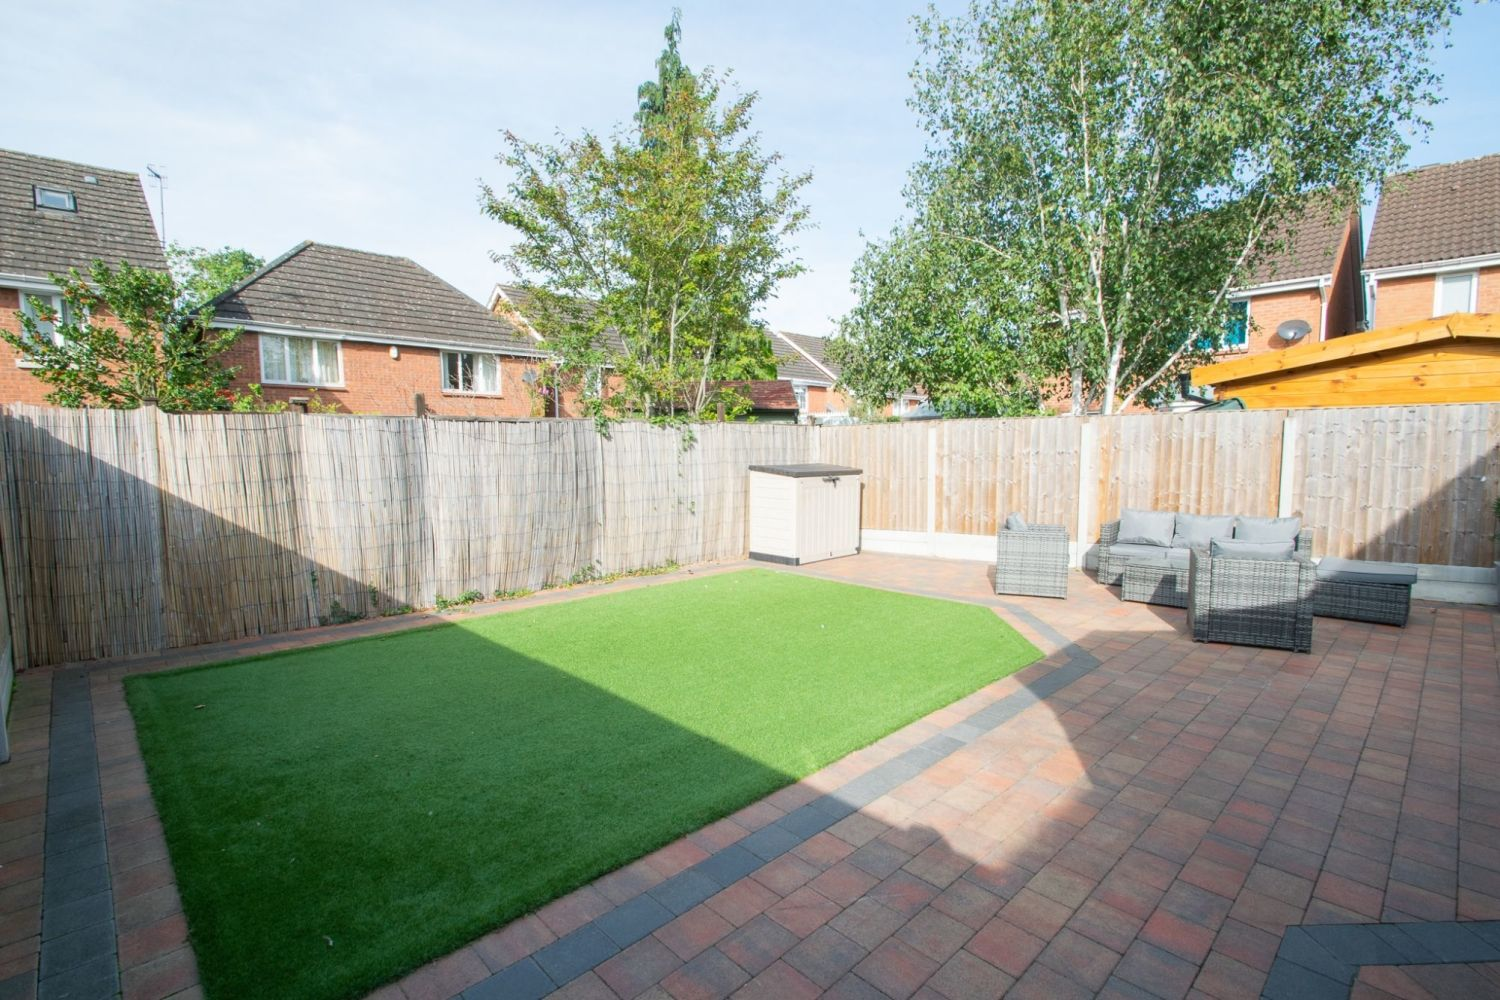 3 bed detached for sale in Batchelor Close, Amblecote  - Property Image 20